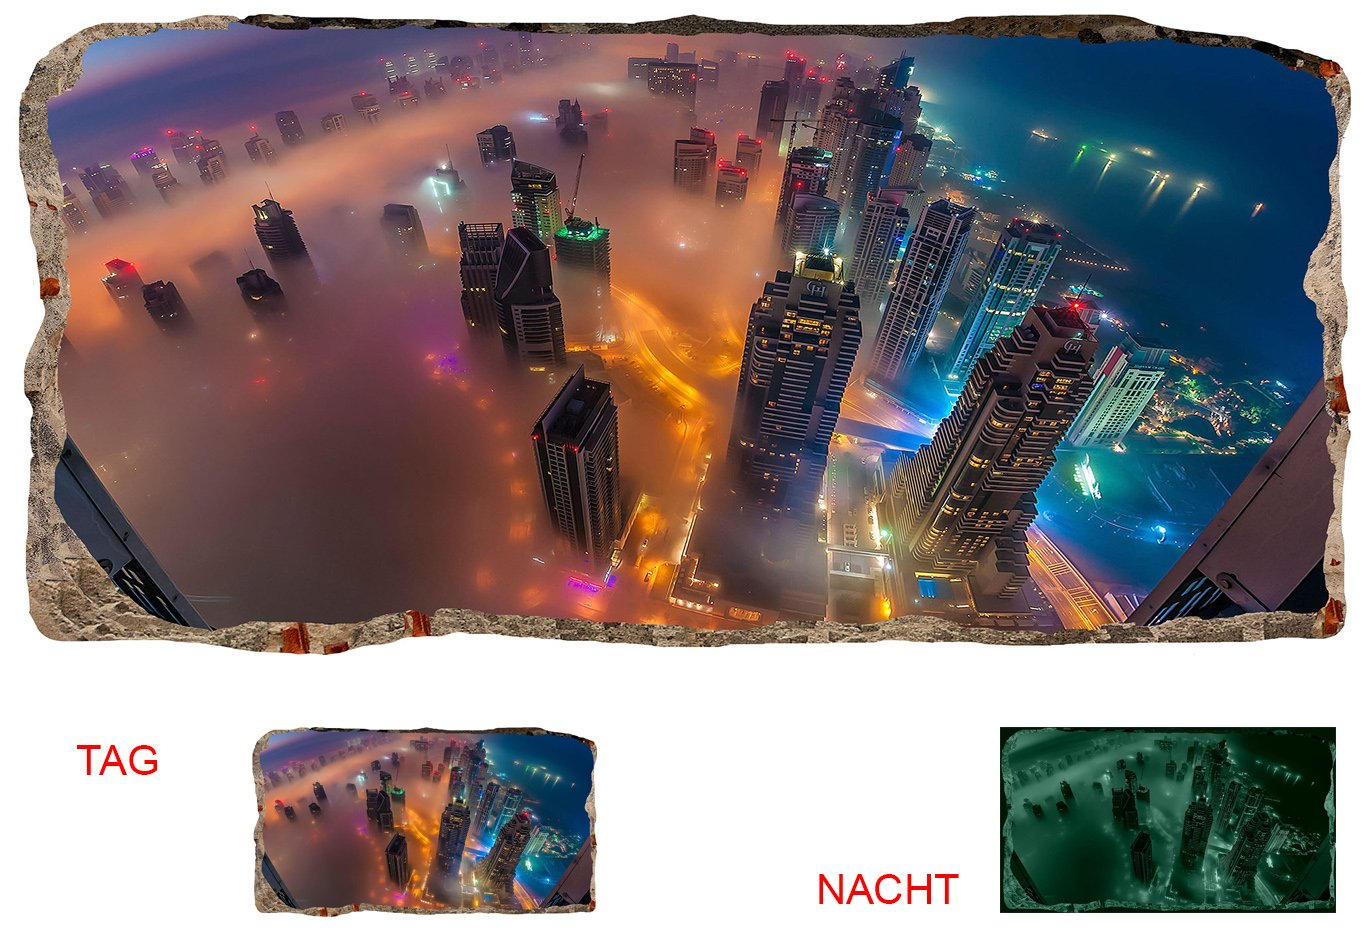 Startonight 3D Mural Wall Art Photo Decor Skyscrapers From Above Amazing Dual View Surprise Large Wall Mural Wallpaper for Living Room or Bedroom Urban Wall Art 120 x 220 cm